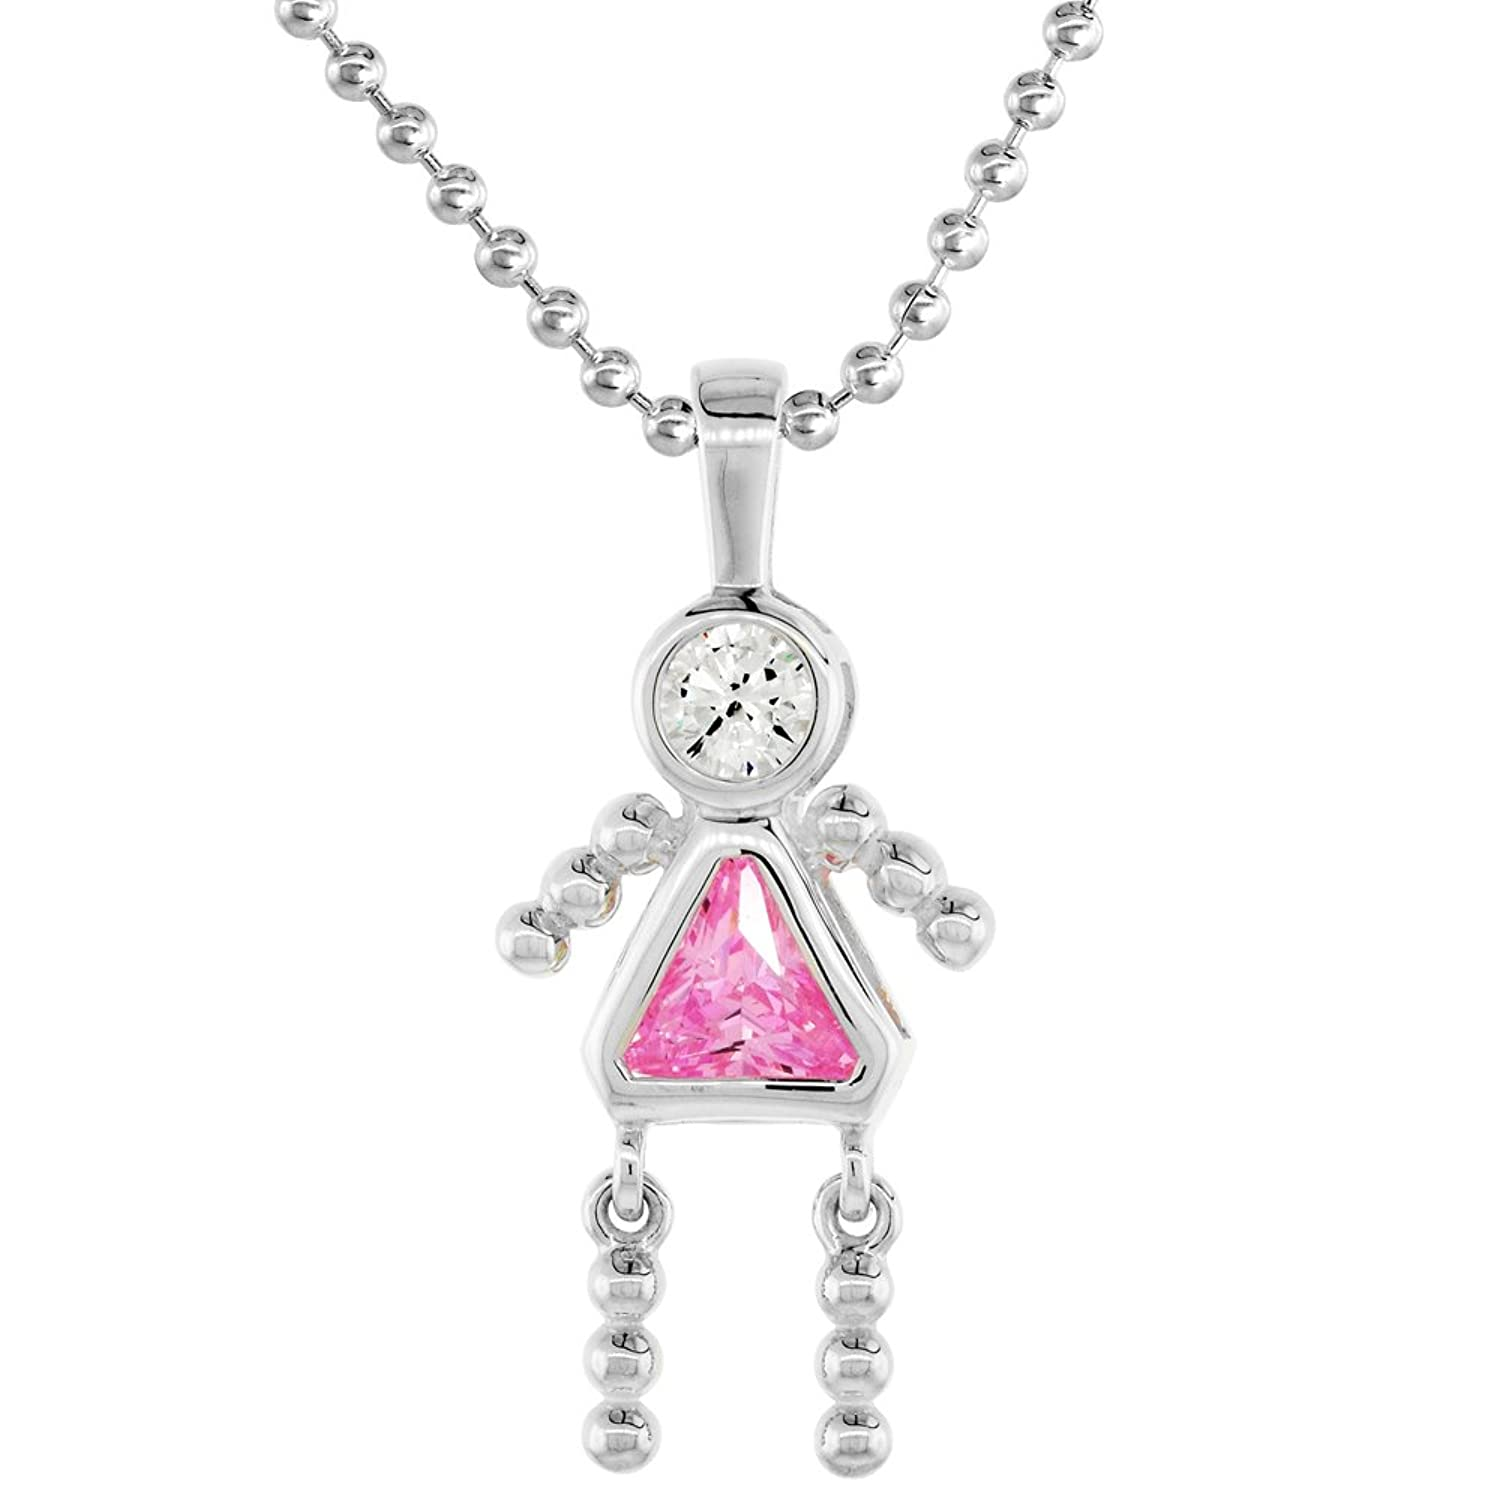 mommy can pin birthstone customized be owlgrandkids birthstonesorigami shown you necklace your mom for but as or grandkid